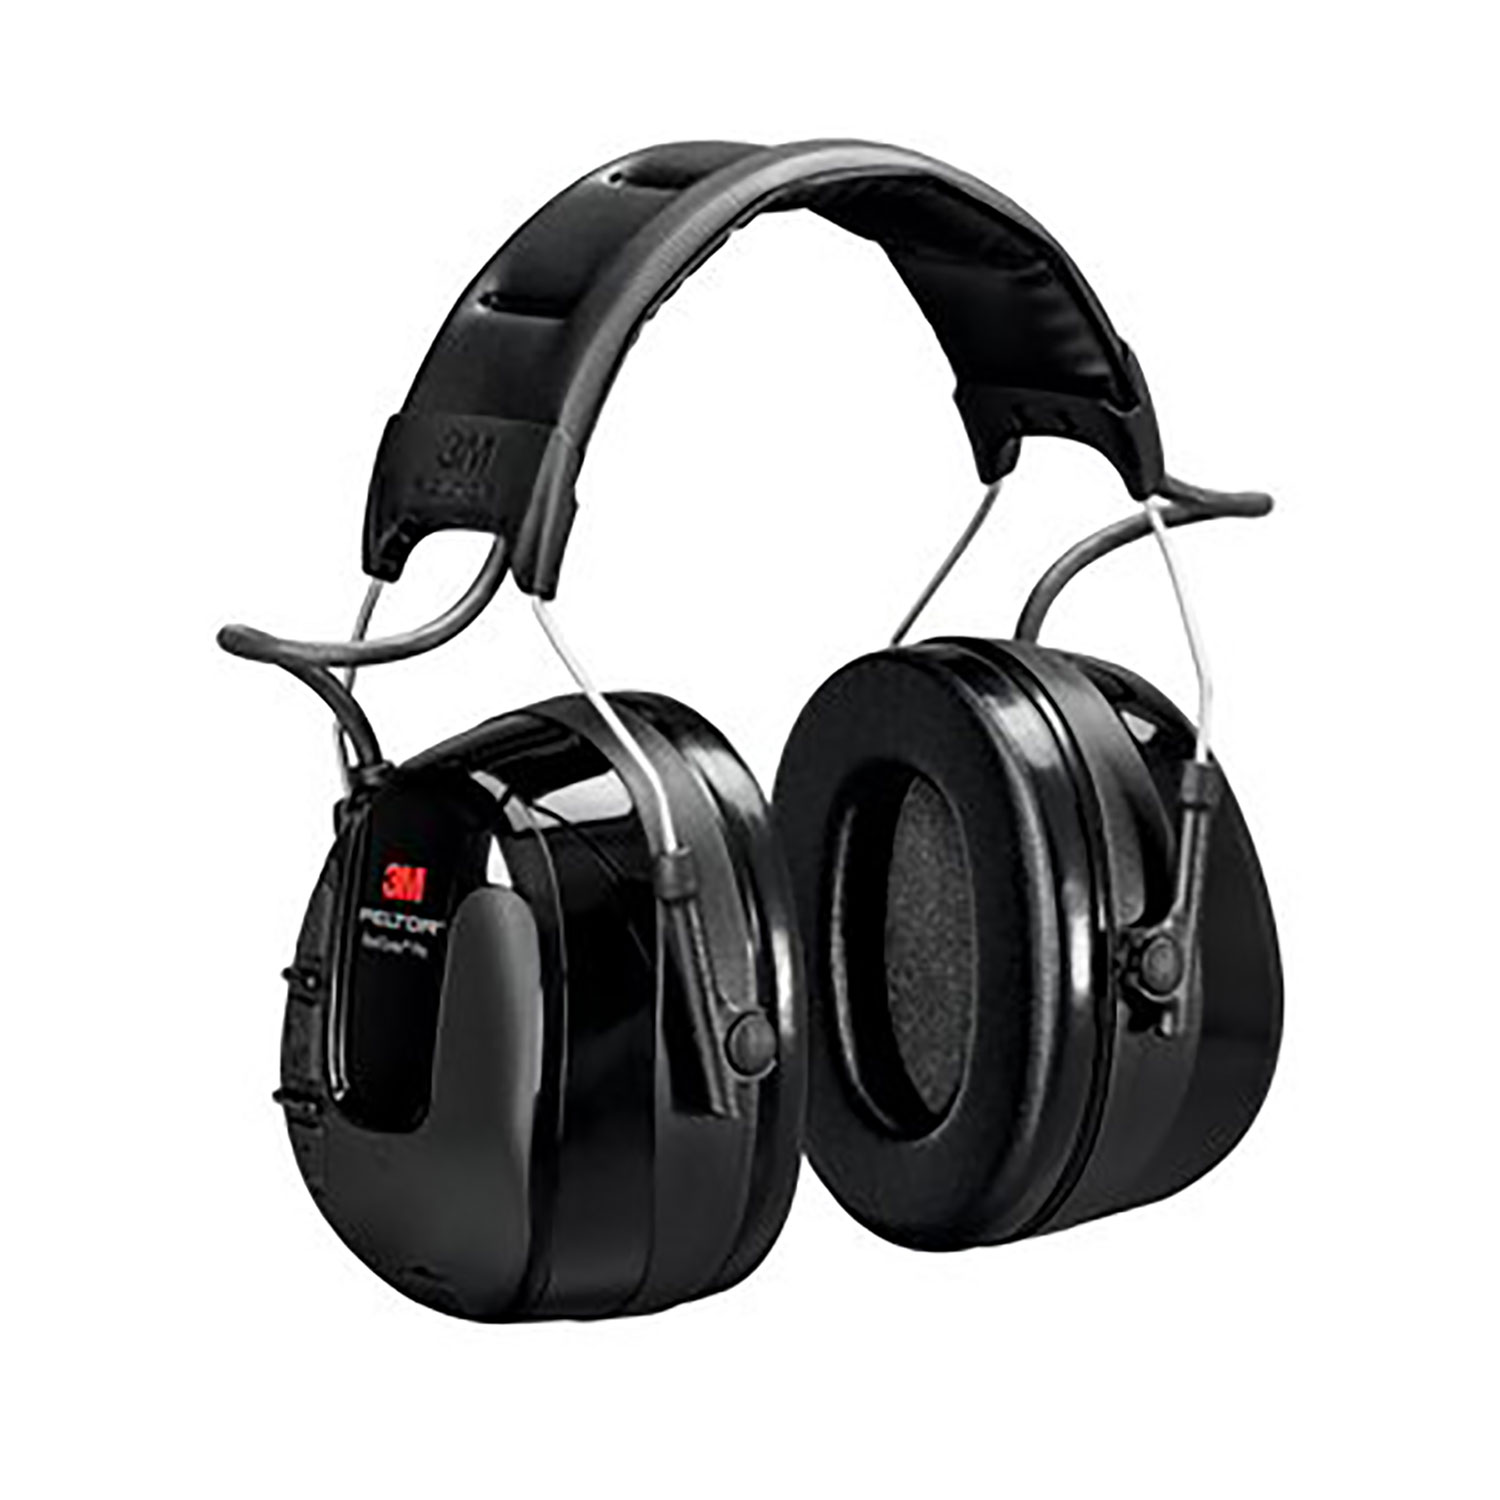 3M™ PELTOR™ WorkTunes™ Pro AM/FM Radio Headset